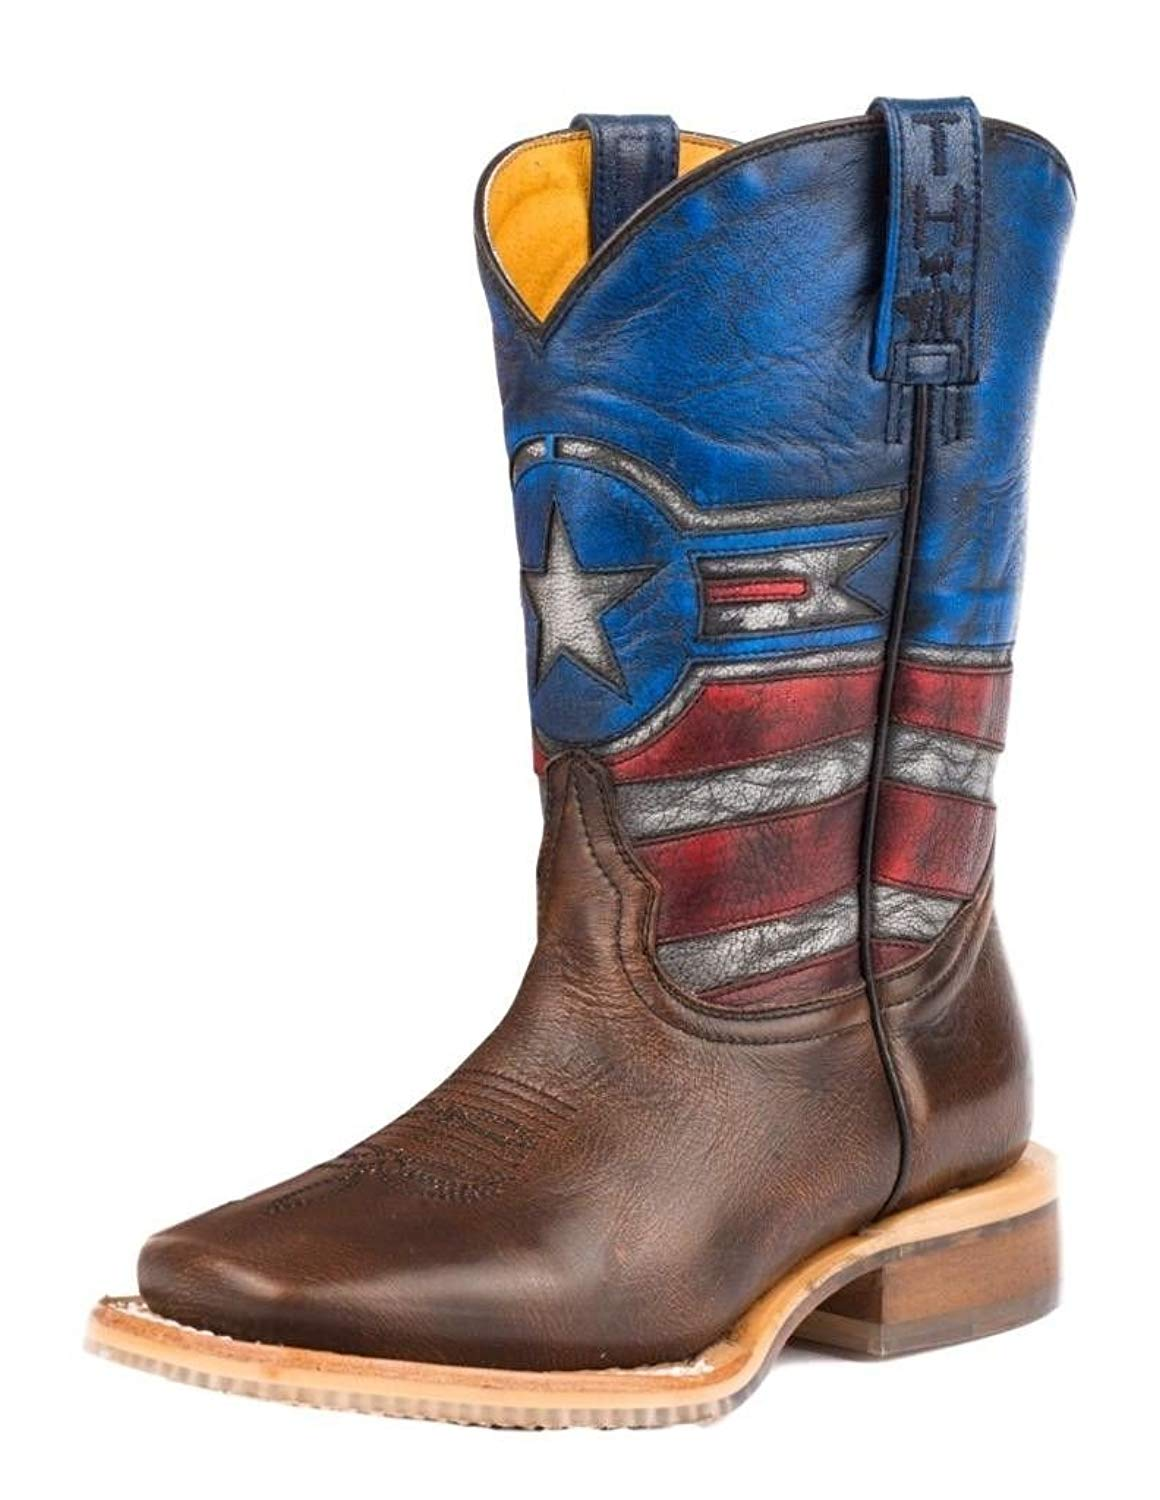 a421a7d5926 Buy Tin Haul Shoes Kids Justice Western Boot in Cheap Price on ...